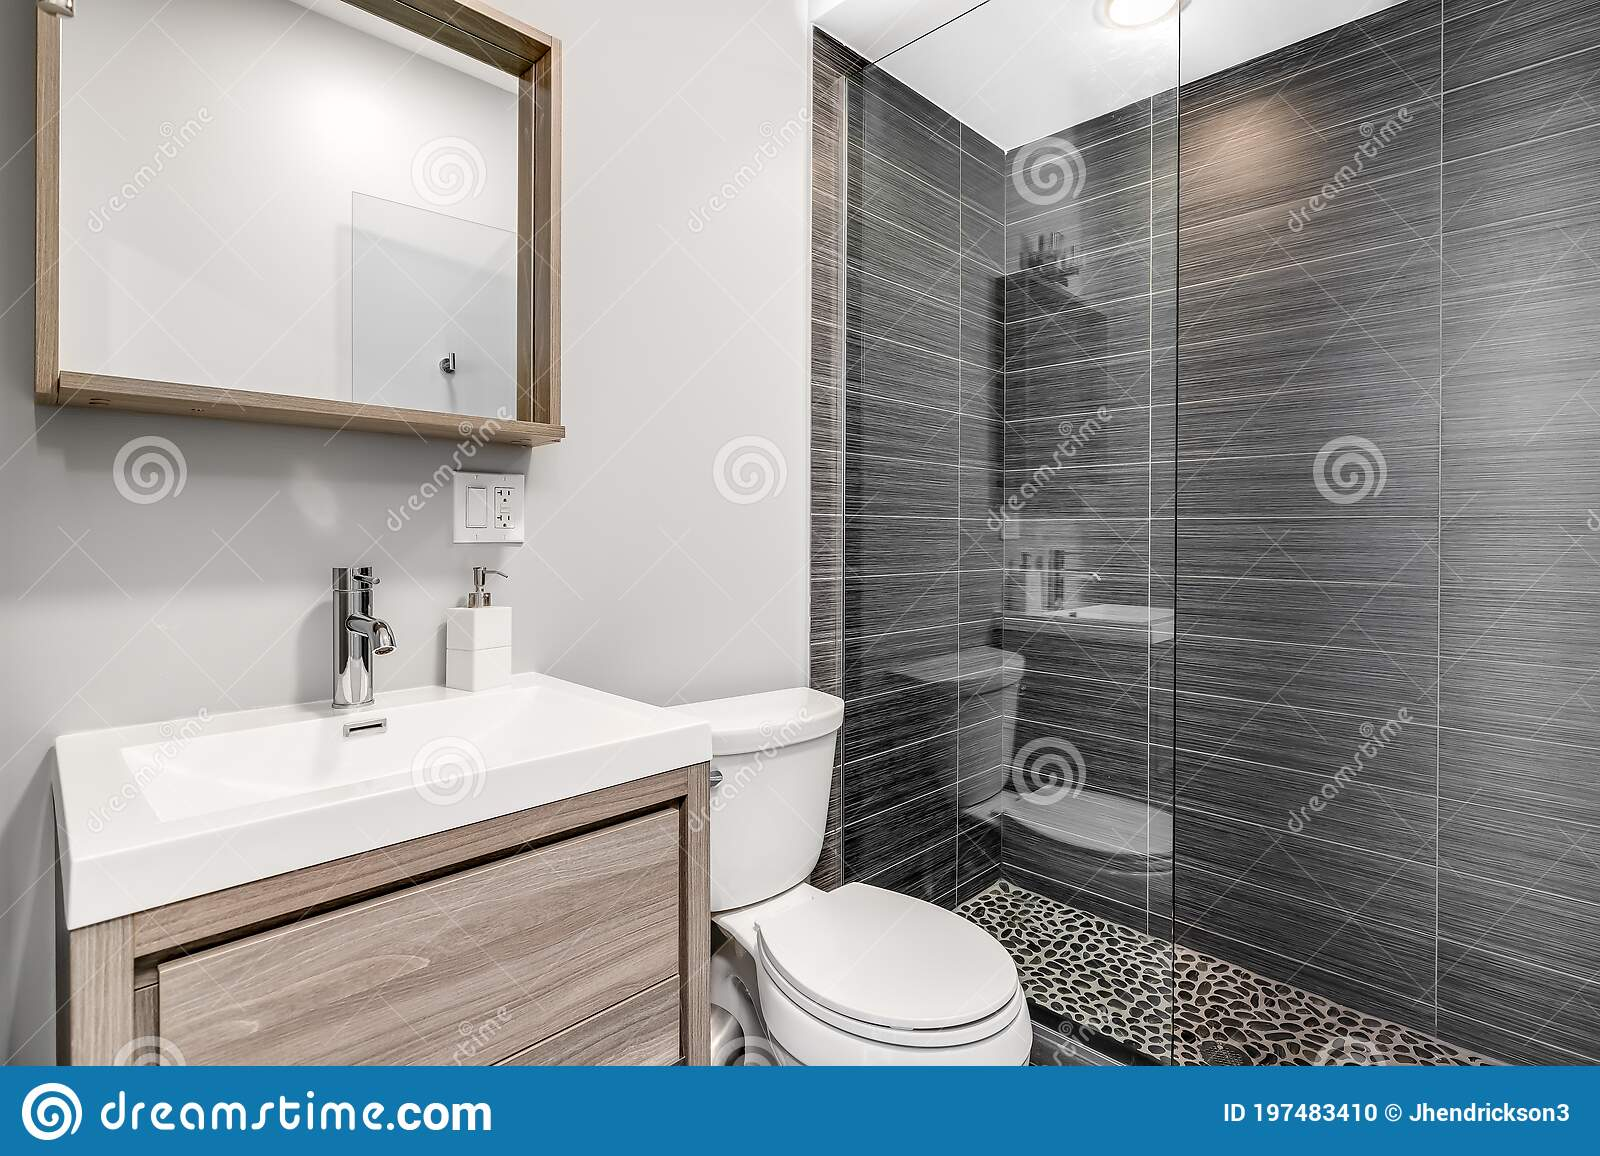 A Small Bathroom With A Light Wood Vanity And A Grey Tiled Shower Stock Photo Image Of Vanity Design 197483410